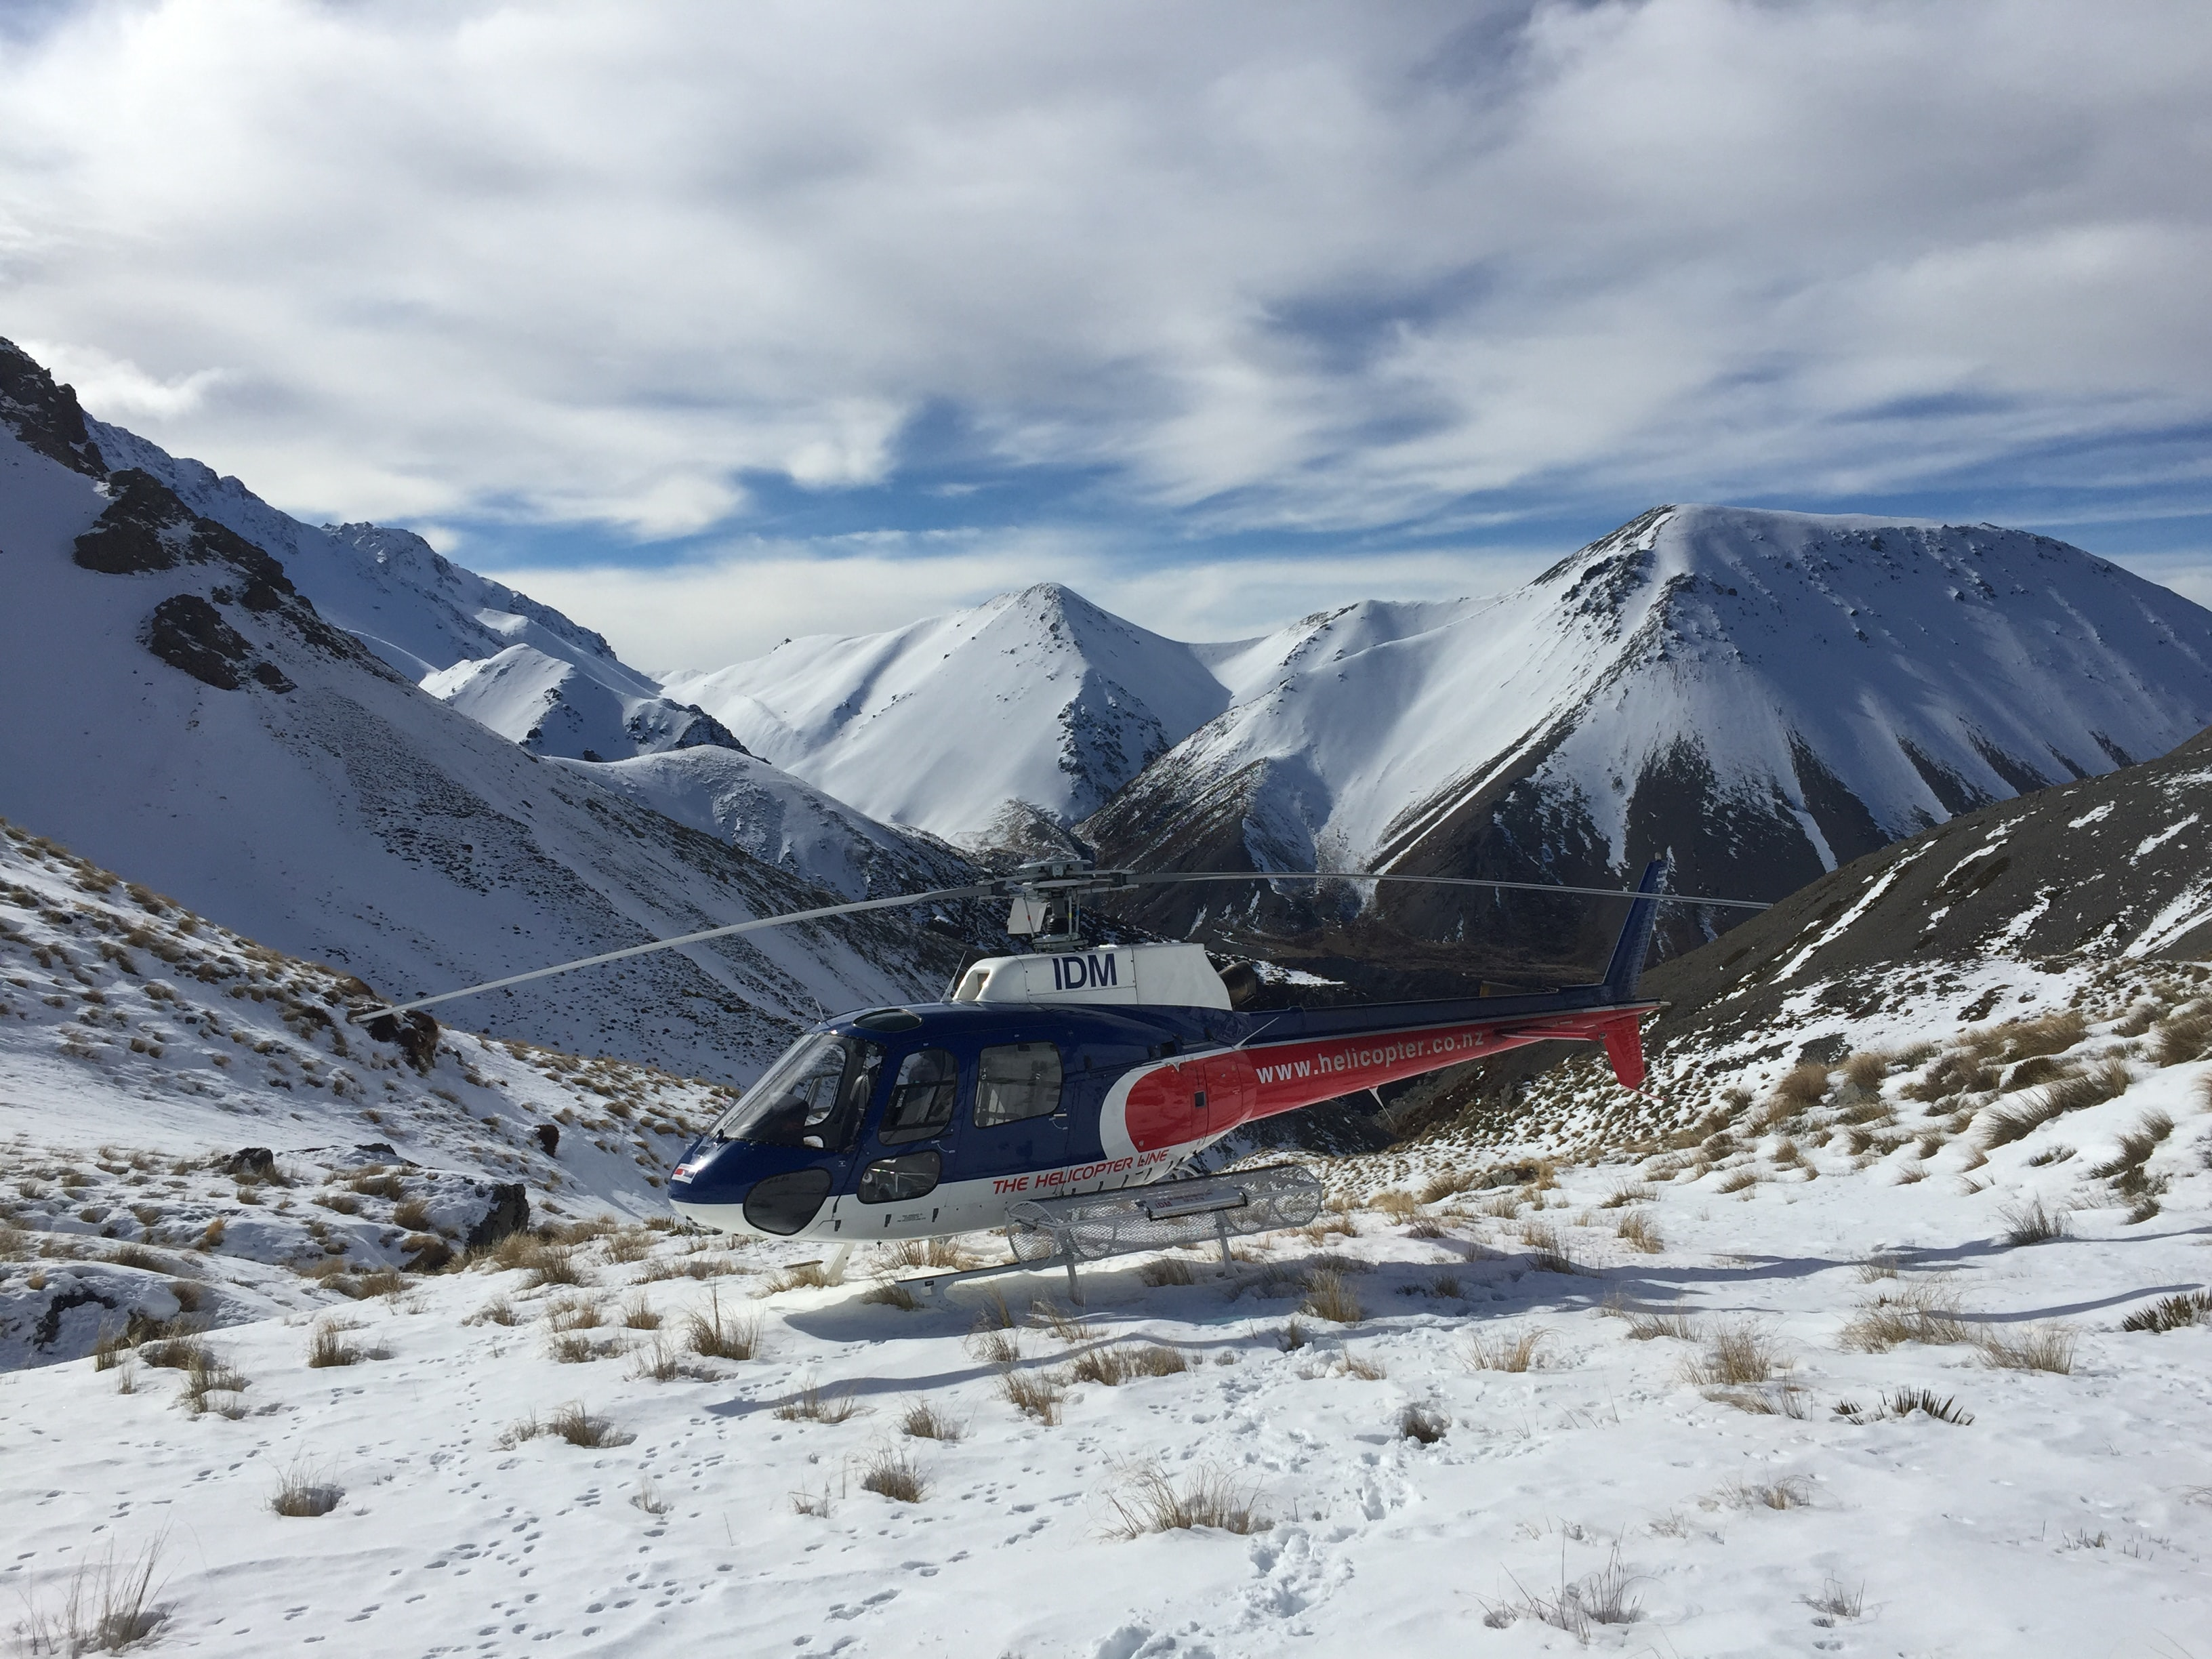 black and red helicopter on mountain